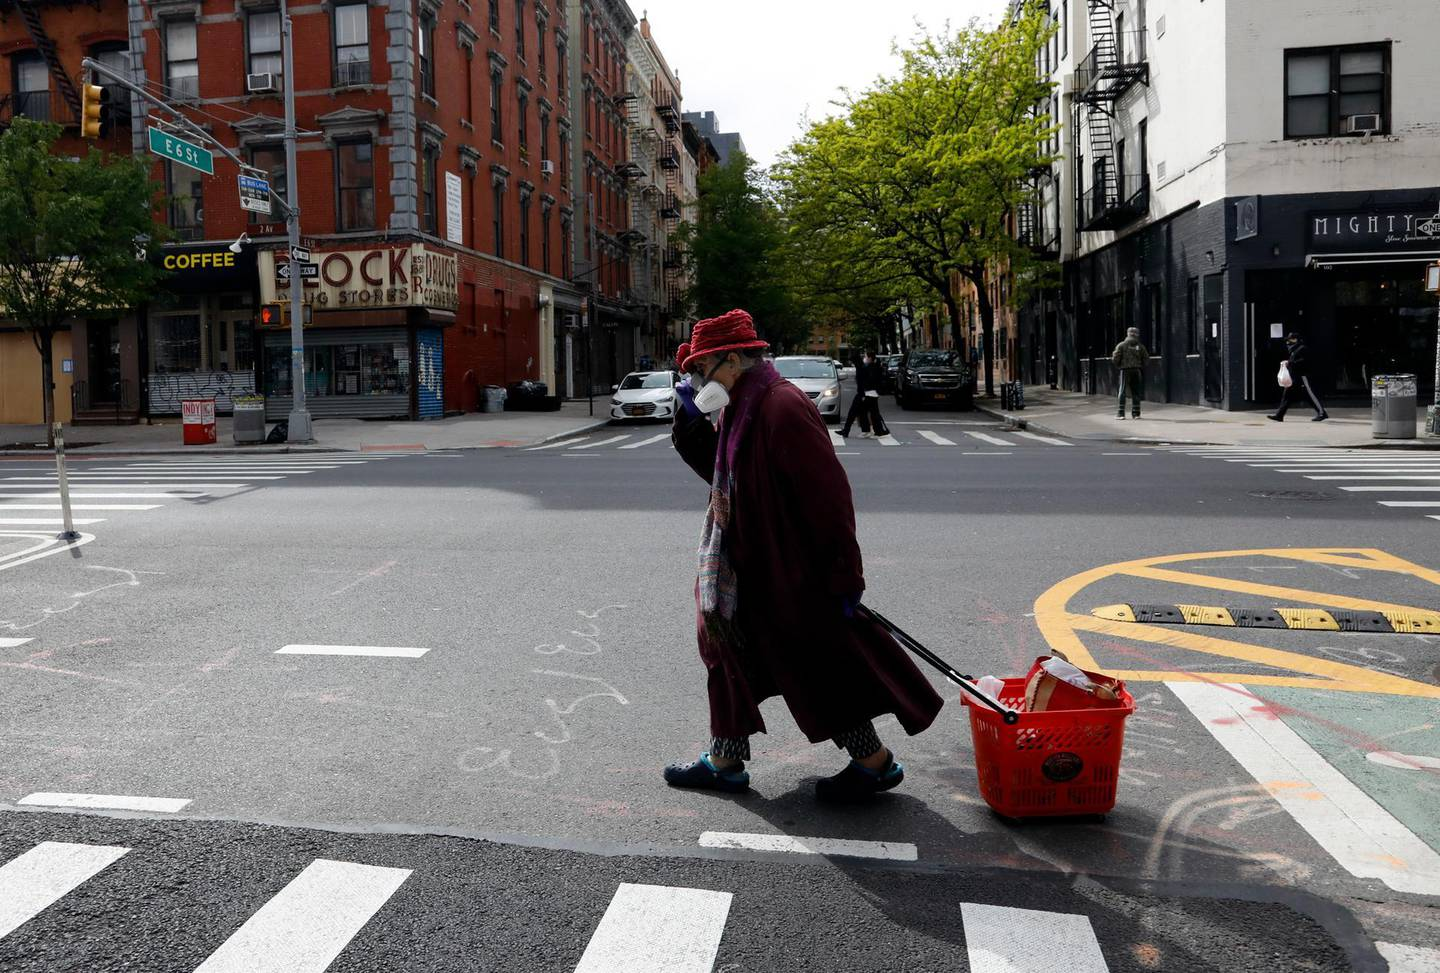 epa08412506 An elderly woman holds her hat as she wears a full face mask while crossing the street on the Lower East Side of New York, USA, 09 May 2020. New York City remains the epicenter of the coronavirus outbreak in the USA.  EPA/JASON SZENES